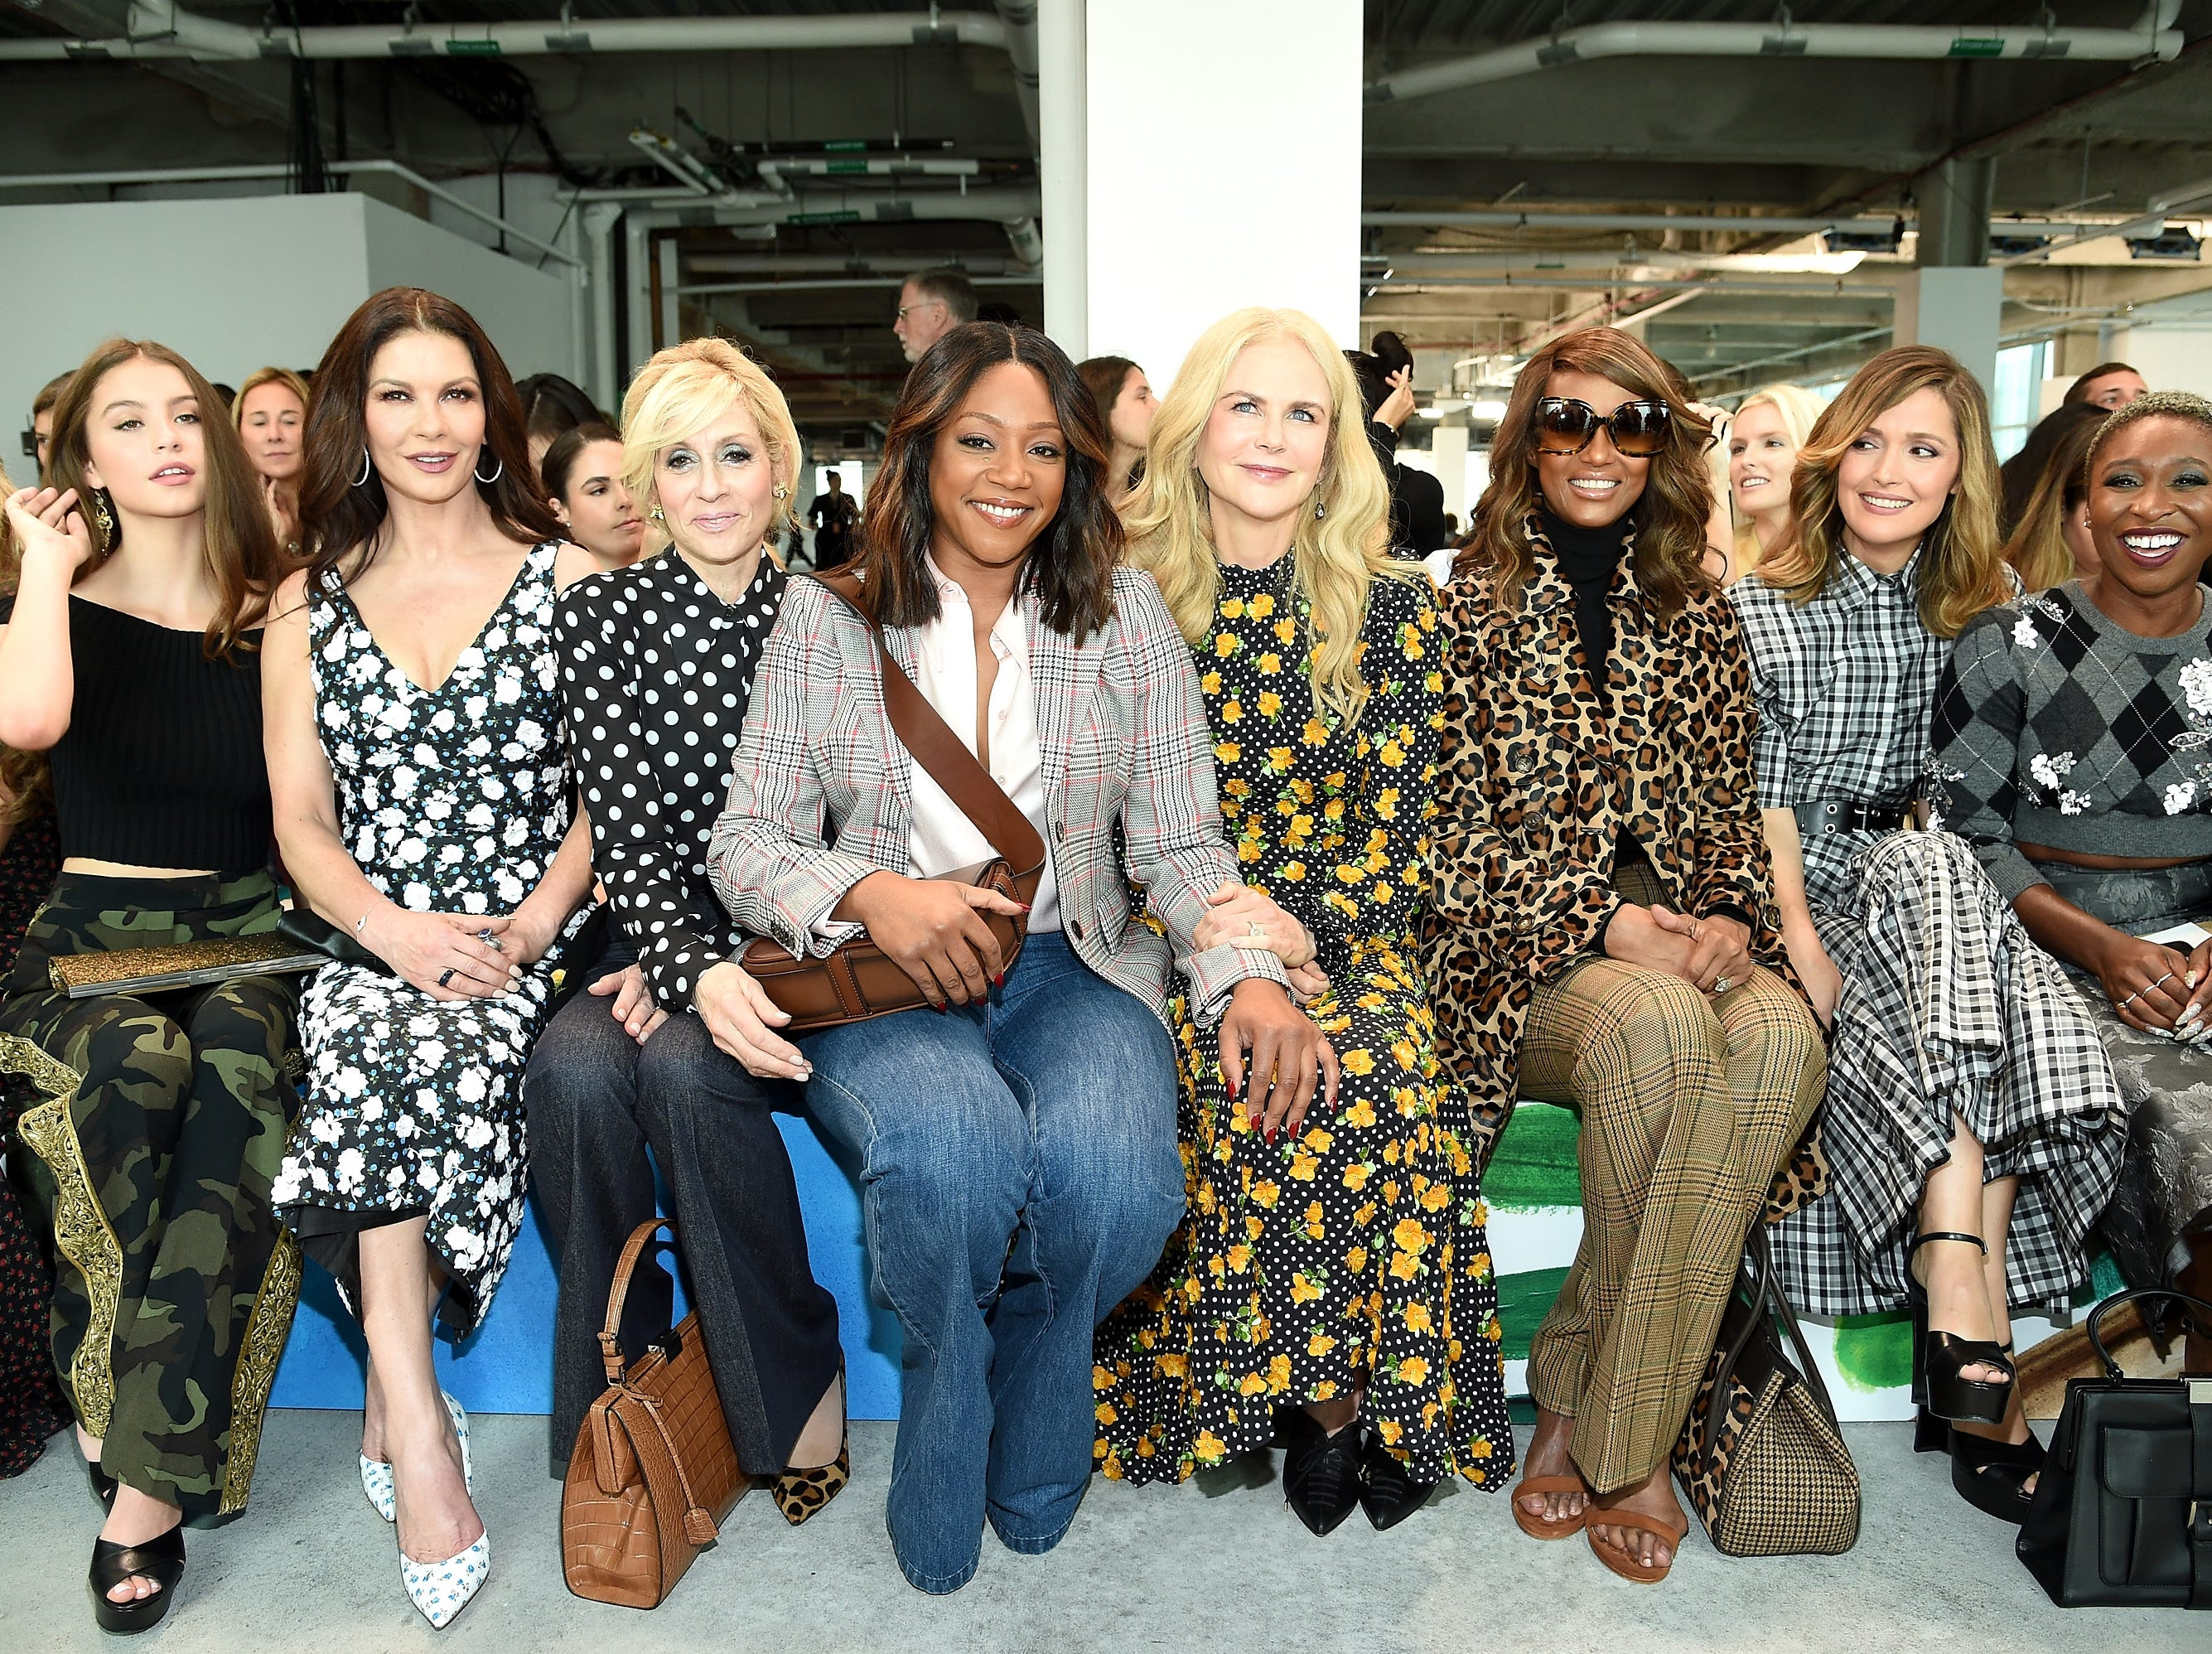 NEW YORK, NY - SEPTEMBER 12:  (L-R) Carys Zeta Douglas, Catherine Zeta-Jones, Judith Light, Tiffany Haddish, Nicole Kidman, Iman, Rose Byrne, and Cynthia Erivo attend the Michael Kors Collection Spring 2019 Runway Show at Pier 17 on September 12, 2018 in New York City.  (Photo by Dimitrios Kambouris/Getty Images for Michael Kors) ORG XMIT: 775216953 ORIG FILE ID: 1032085862